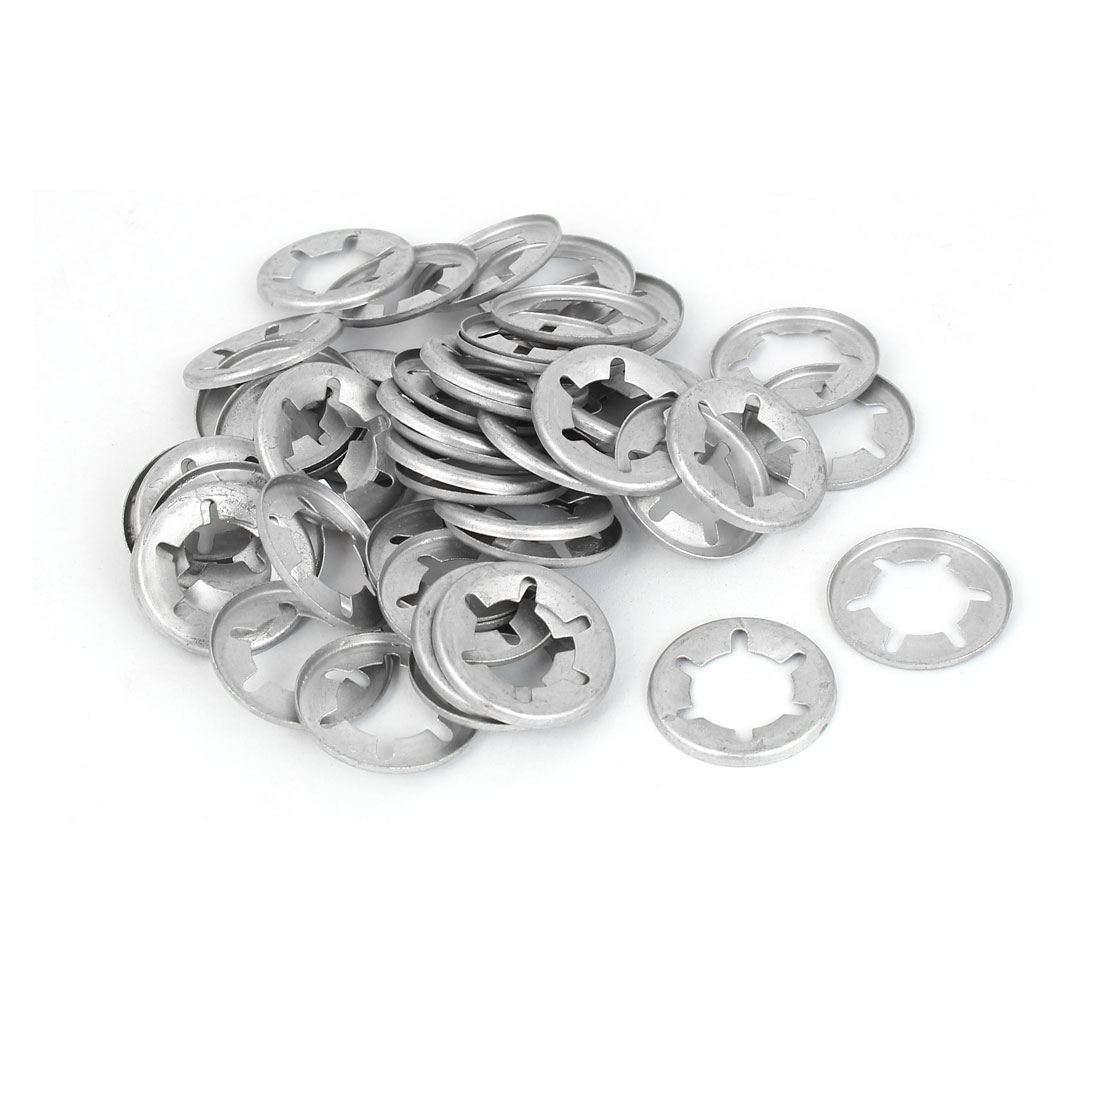 16mm Inner Dia Starlock Push On Fasteners Locking Washers Speed Clips 50 Pcs